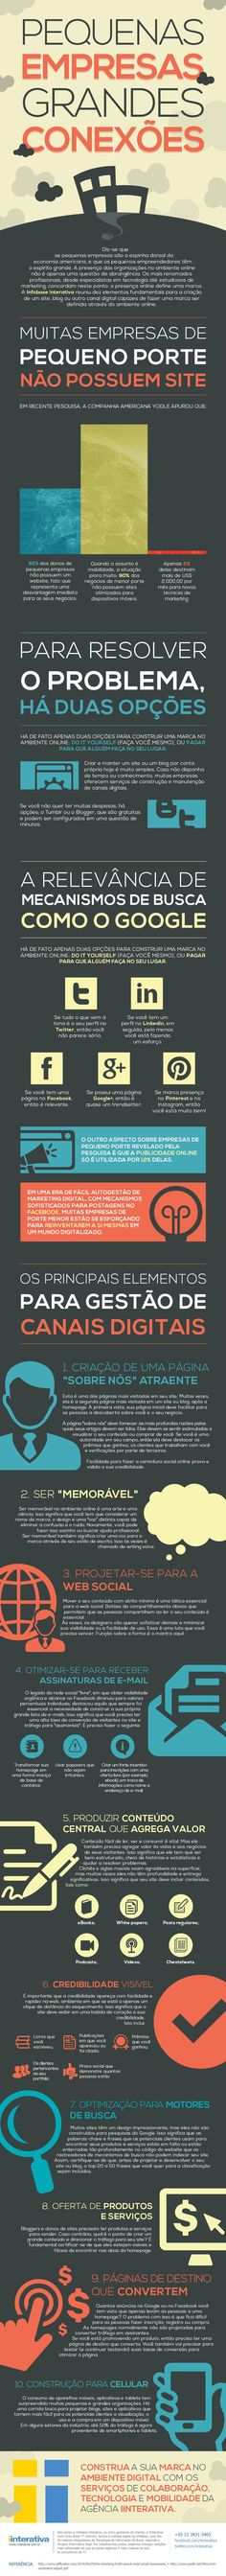 [INFOGRAFICO] PQNS MARCAS, GDES CONEXOES Leia os nossos artigos sobre Marketing Digital no Blog Estratégia Digital em http://www.estrategiadigital.pt/category/marketing-digital/